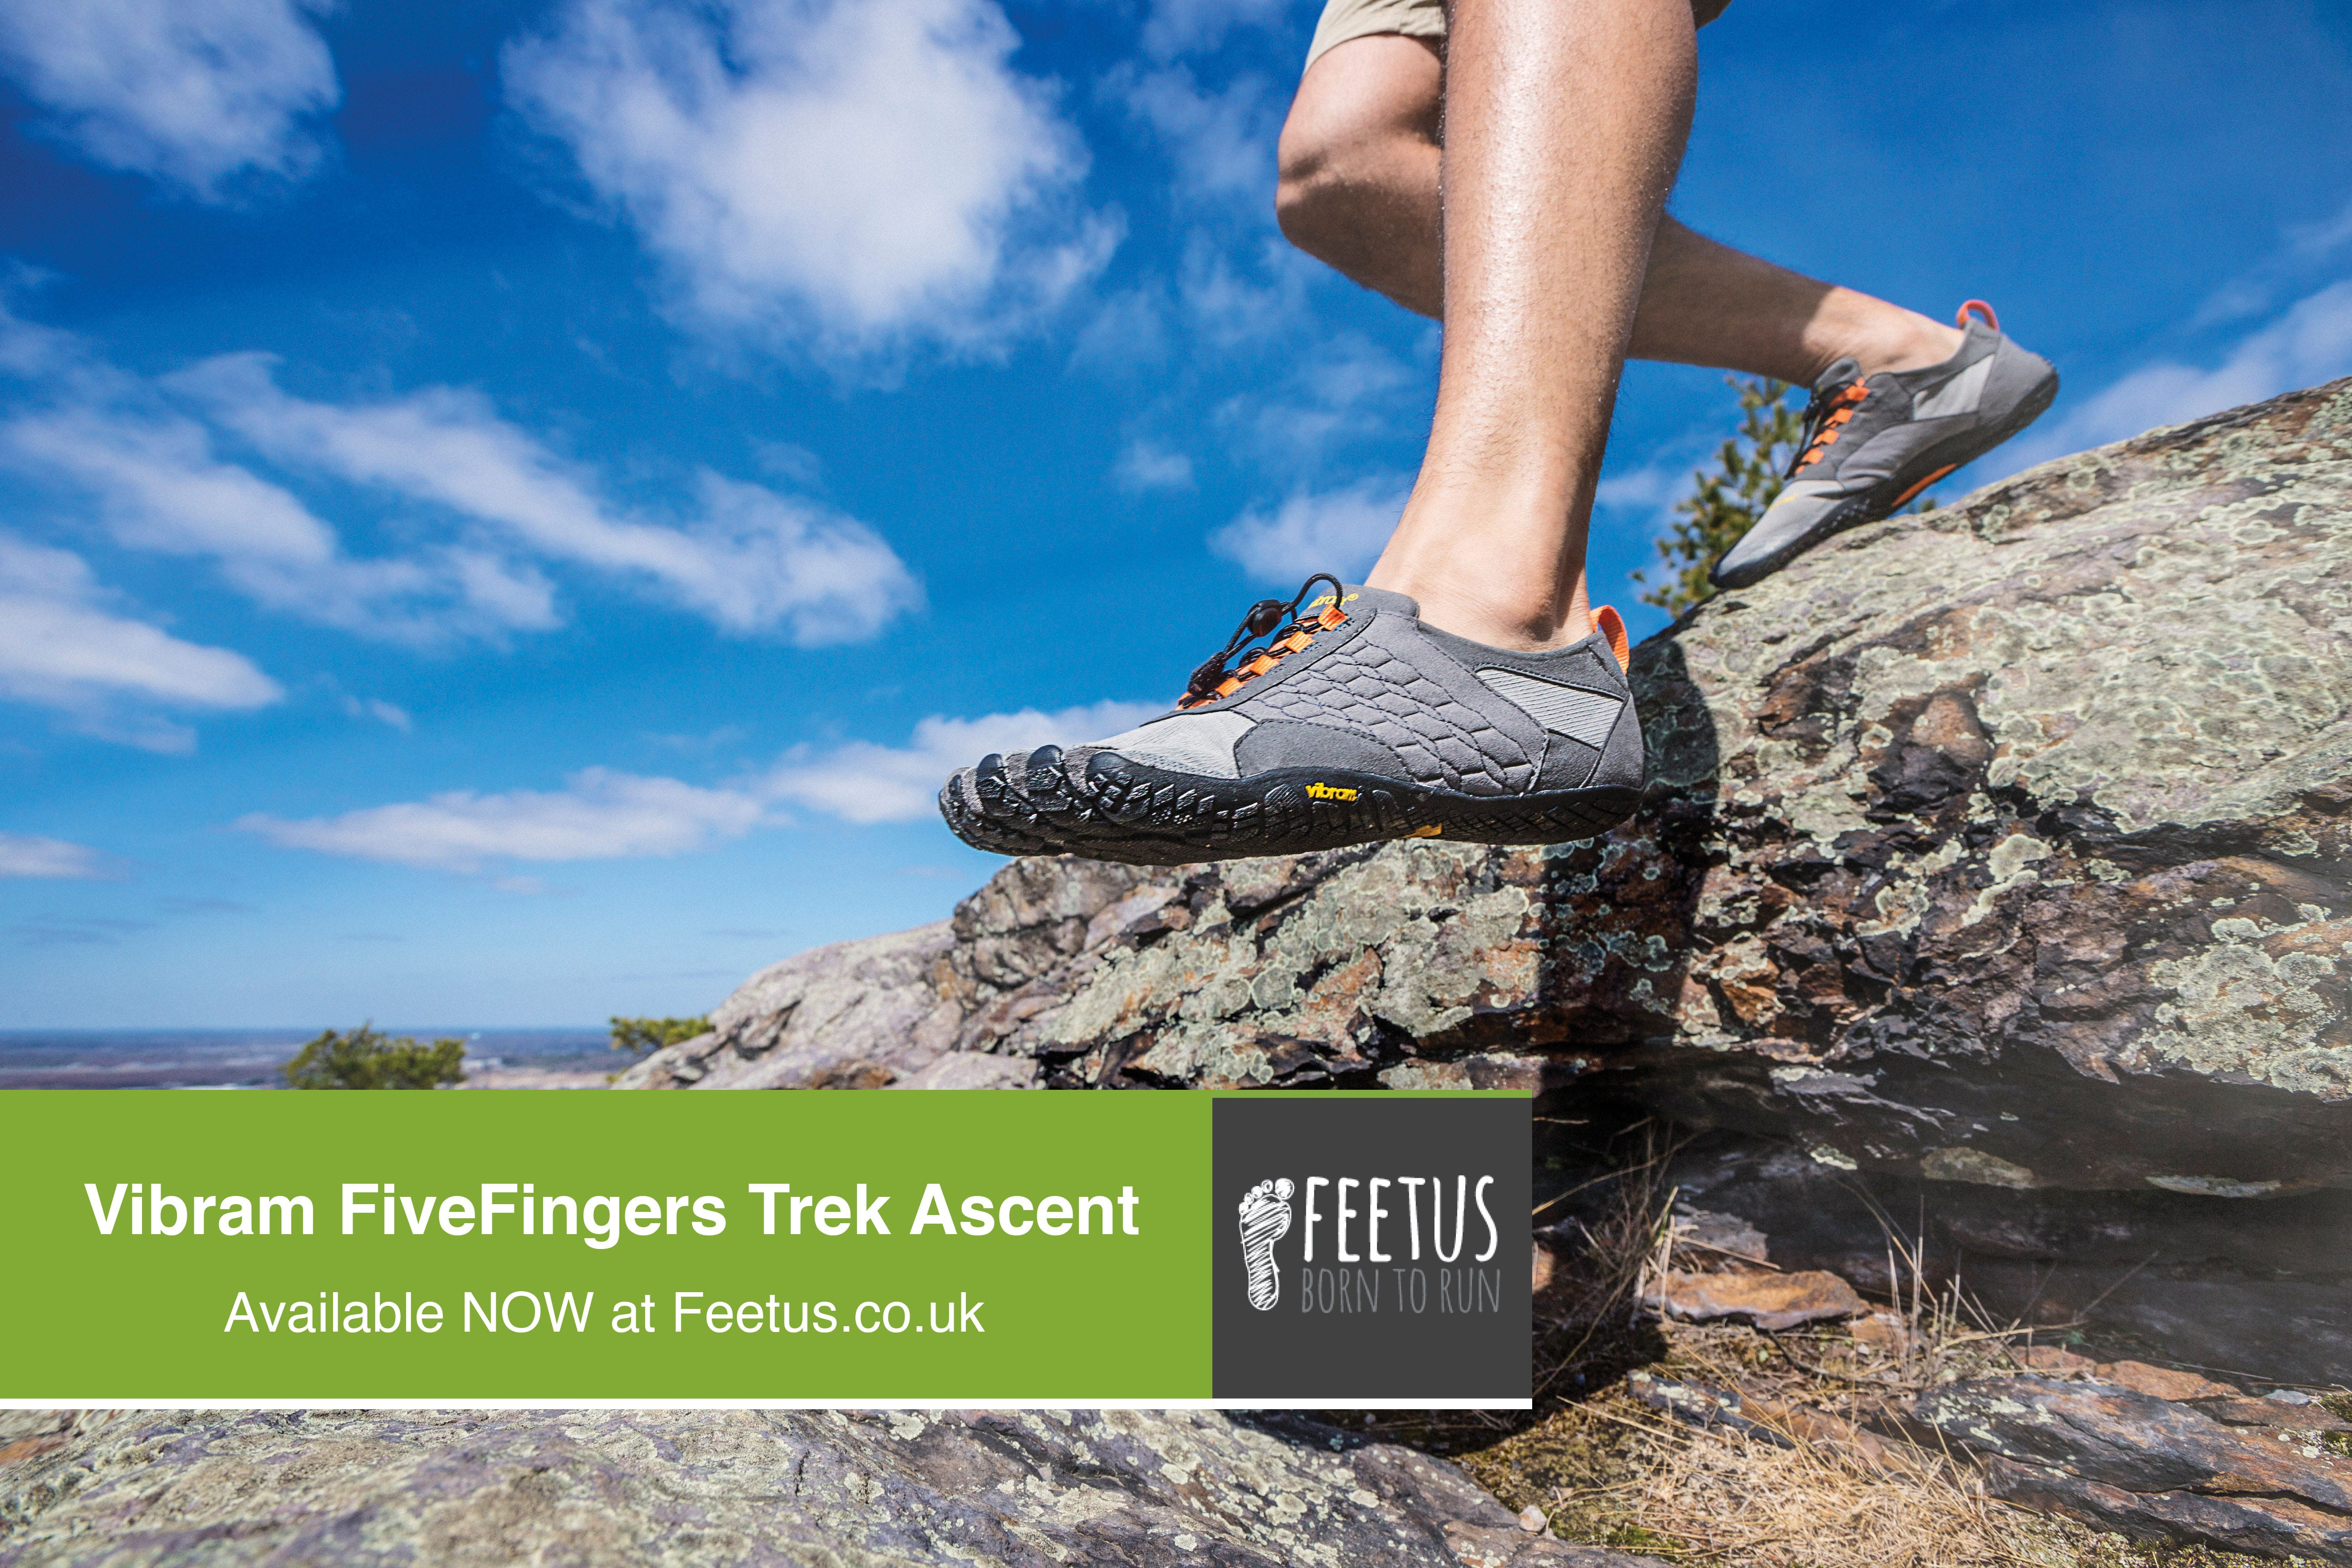 Vibram Fivefingers Trek Ascent. Off-Road and Trail Running Shoes. Available at Feetus.co.uk